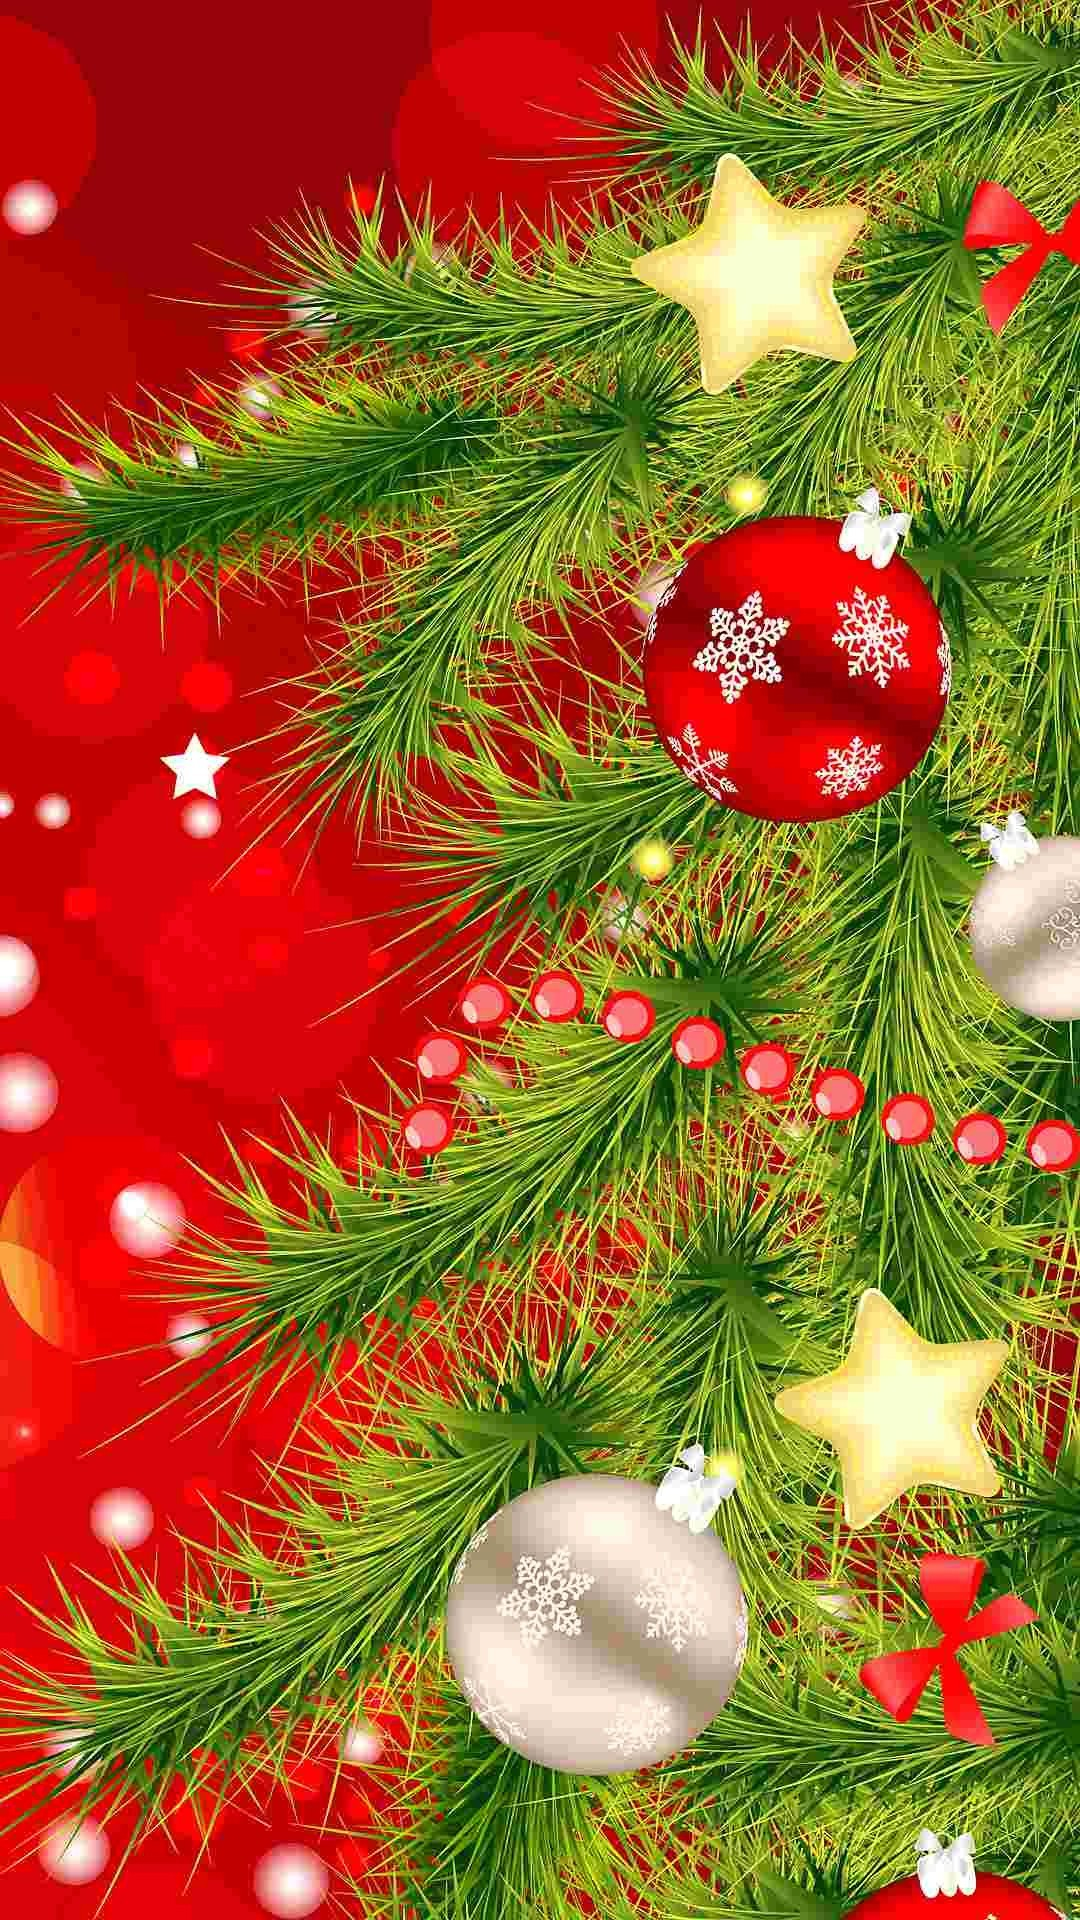 christmas tree wallpaper backgrounds 61 images